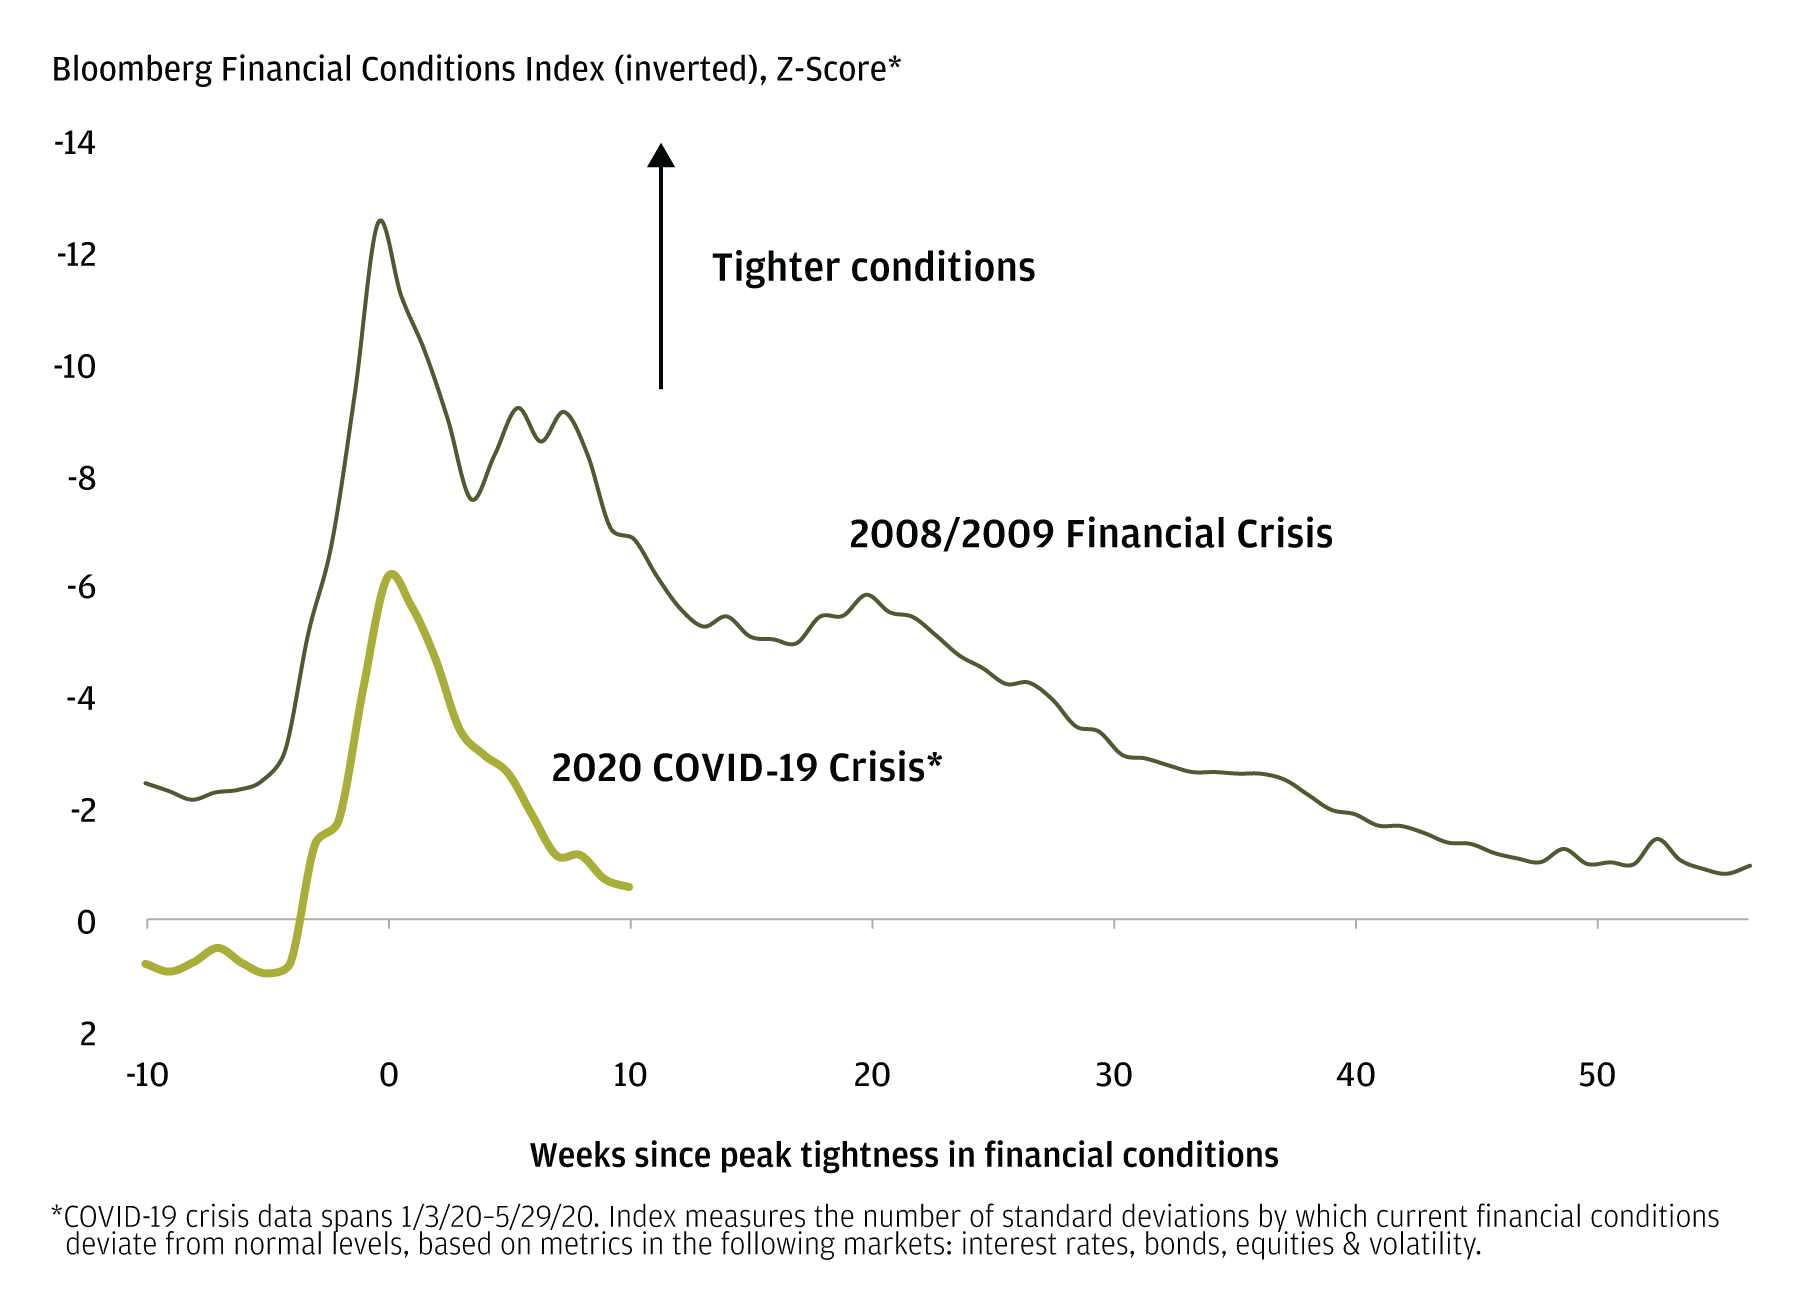 The line chart shows how March's market volatility led to a tightening in financial conditions. However, the aggressive monetary and fiscal support has led to a rapid normalization.